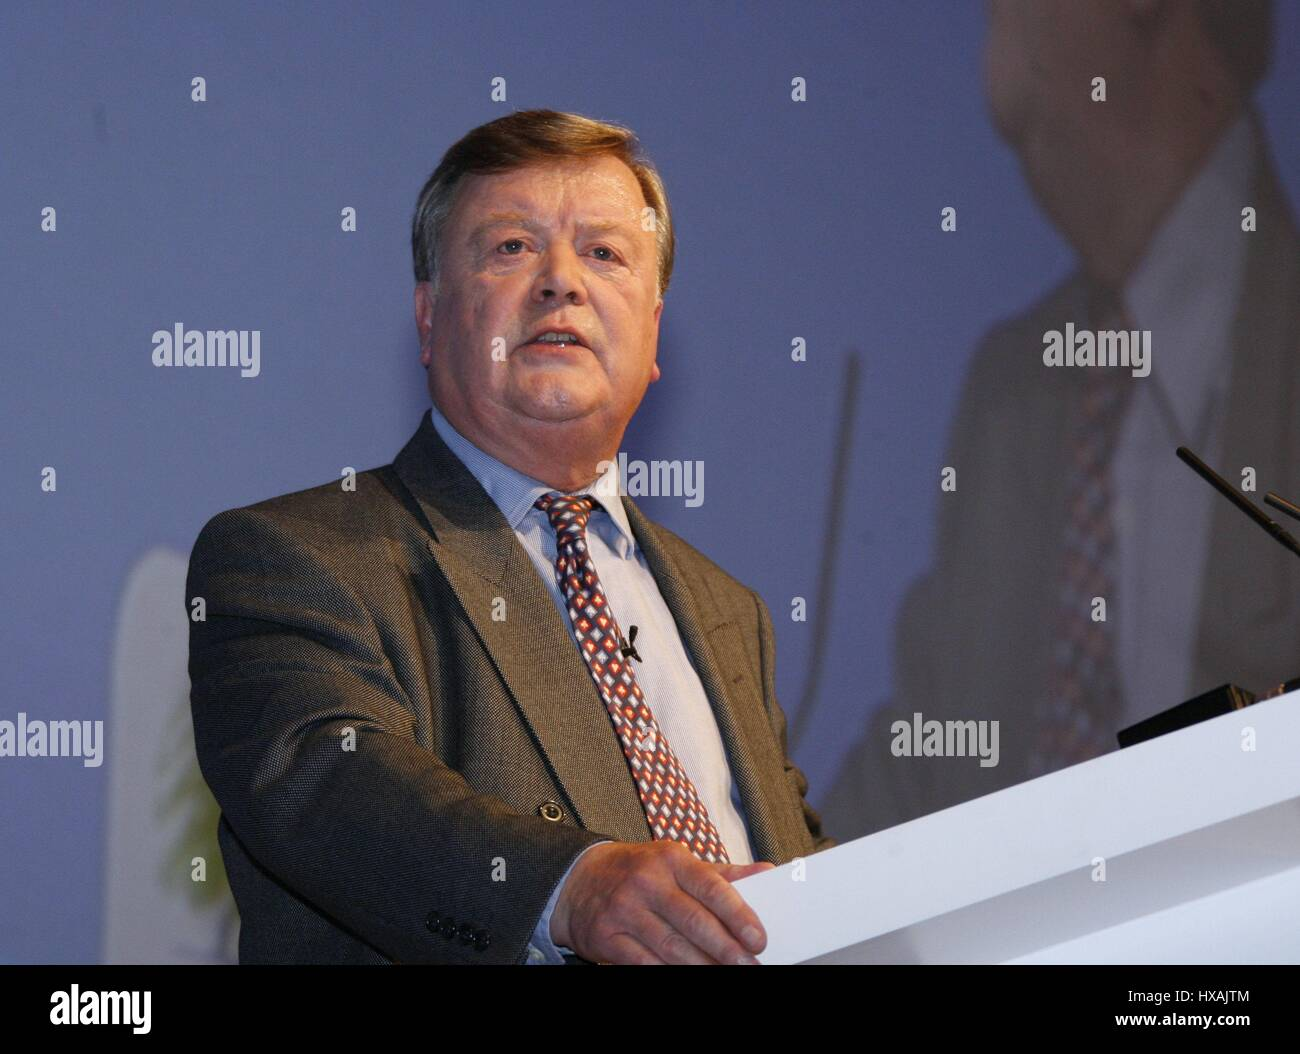 KEN CLARK MP CHAIRMAN OF THE DEOCRACY TASK 02 October 2007 WINTER GARDENS BLACKPOOL ENGLAND - Stock Image